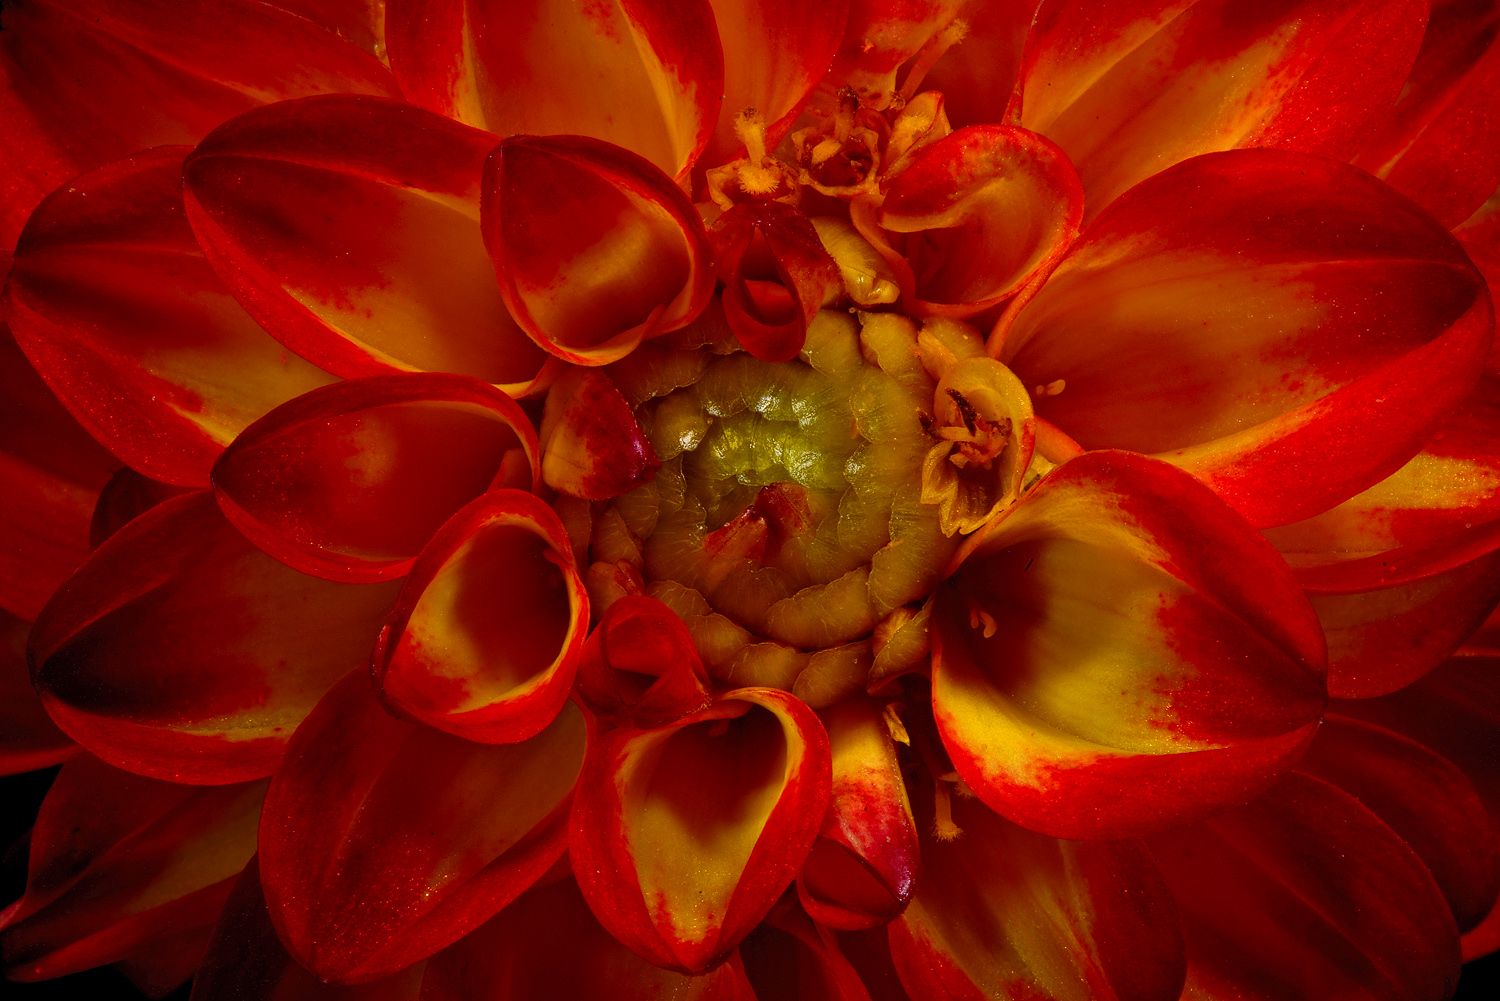 dahlia eye dsc aw author sava gregory and verena